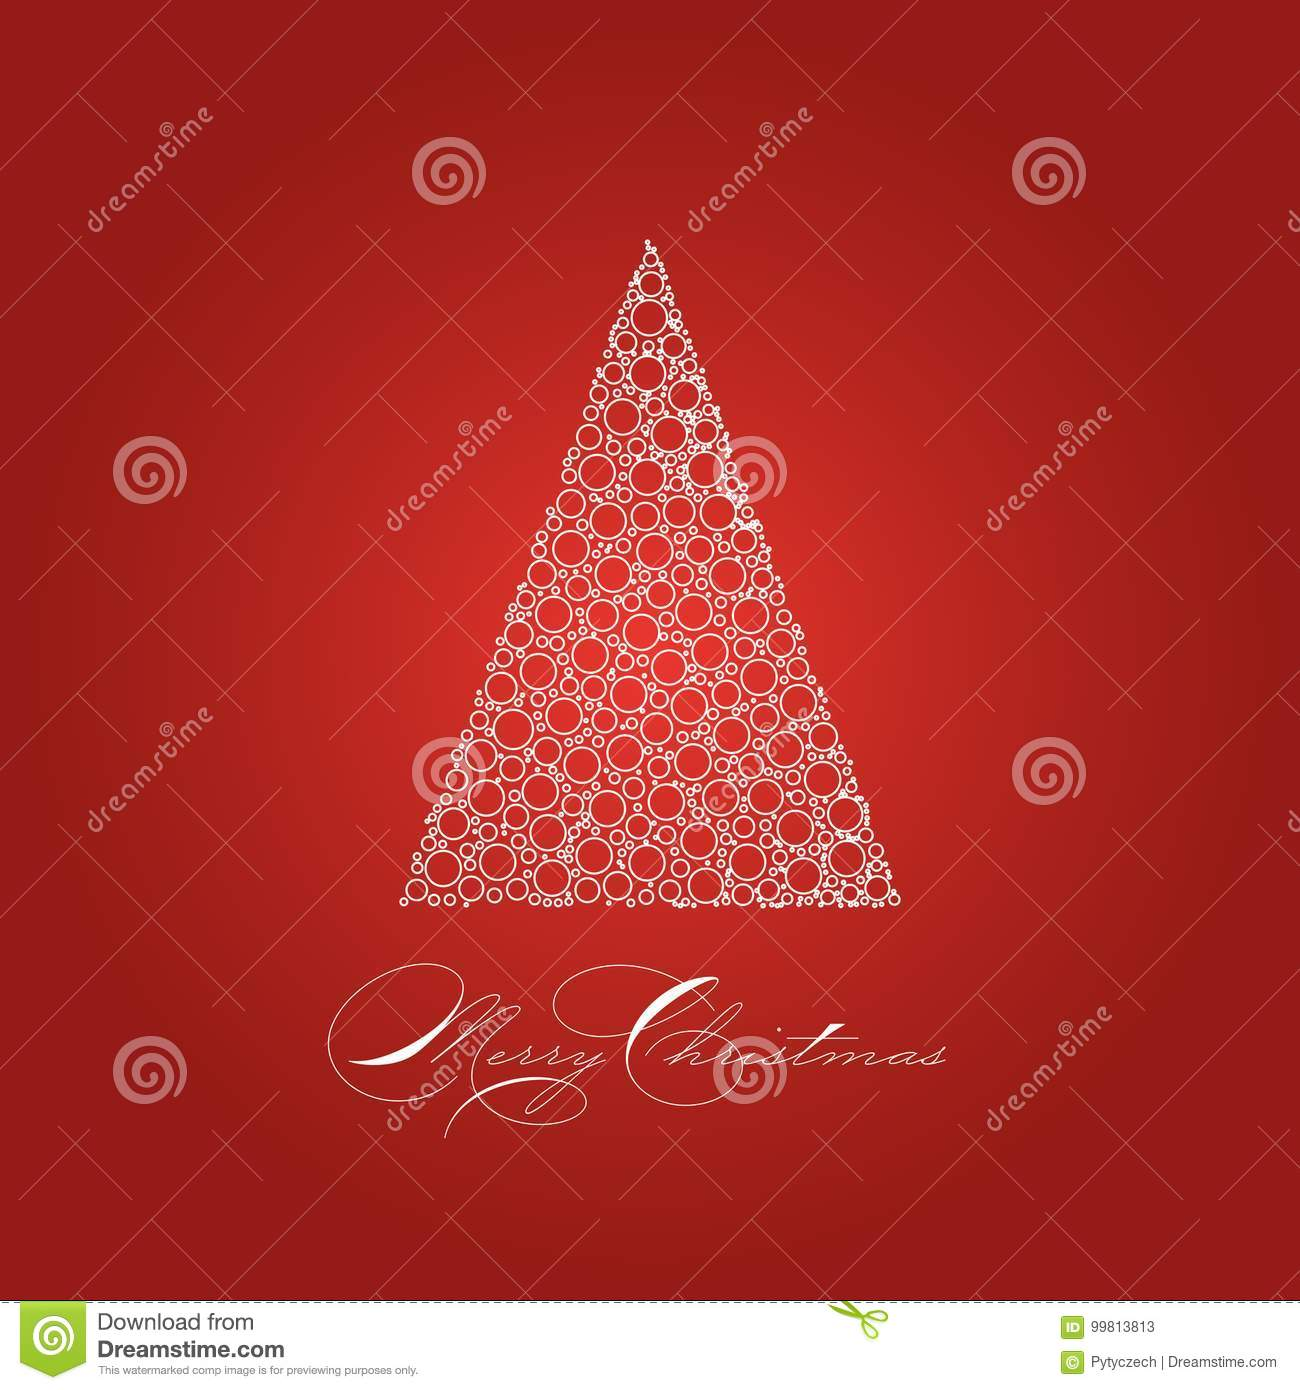 Holiday Card With White Christmas Tree On Red Background Stock Vector Illustration Of Holiday Greeting 99813813